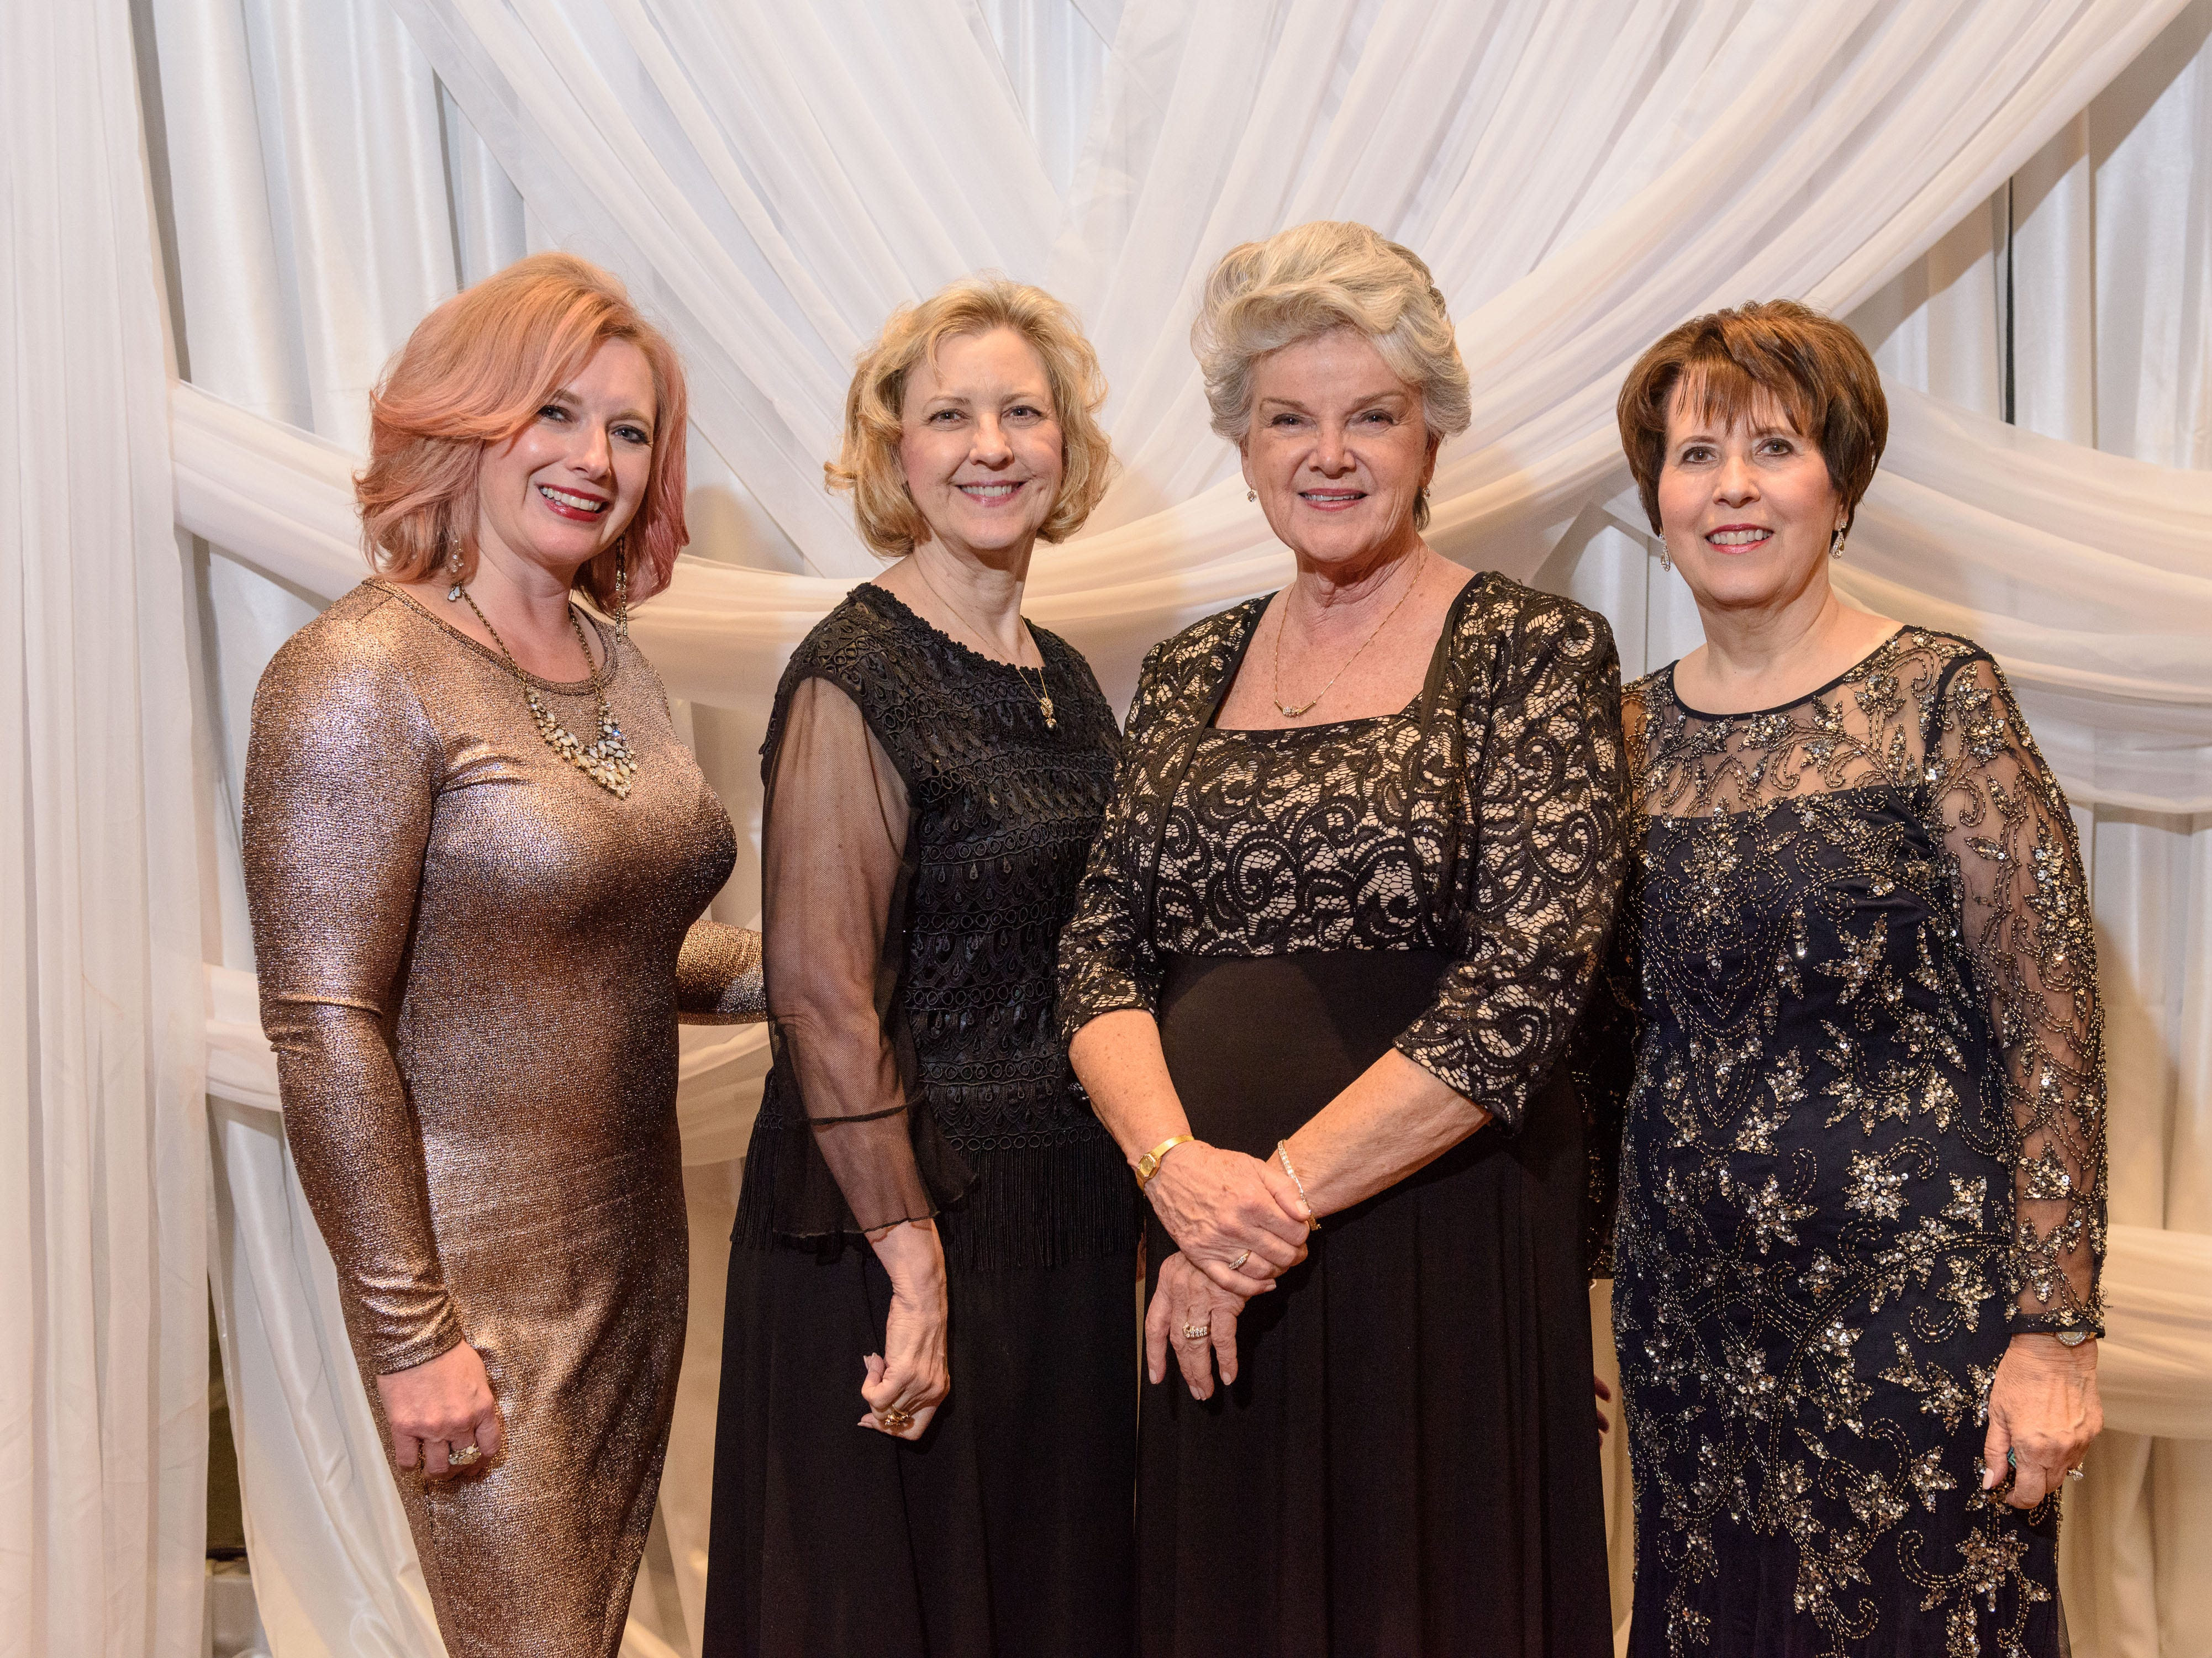 Alicia Joos, Trudy Ross, Karen Miller and Margie McClamroch at the Snow Ball Gala at the Omni Hotel, a benefit for the Jennifer Lawrence Cardiac Intensive Care Unit (CICU) at Norton ChildrenÕs Hospital. Nov. 17, 2018